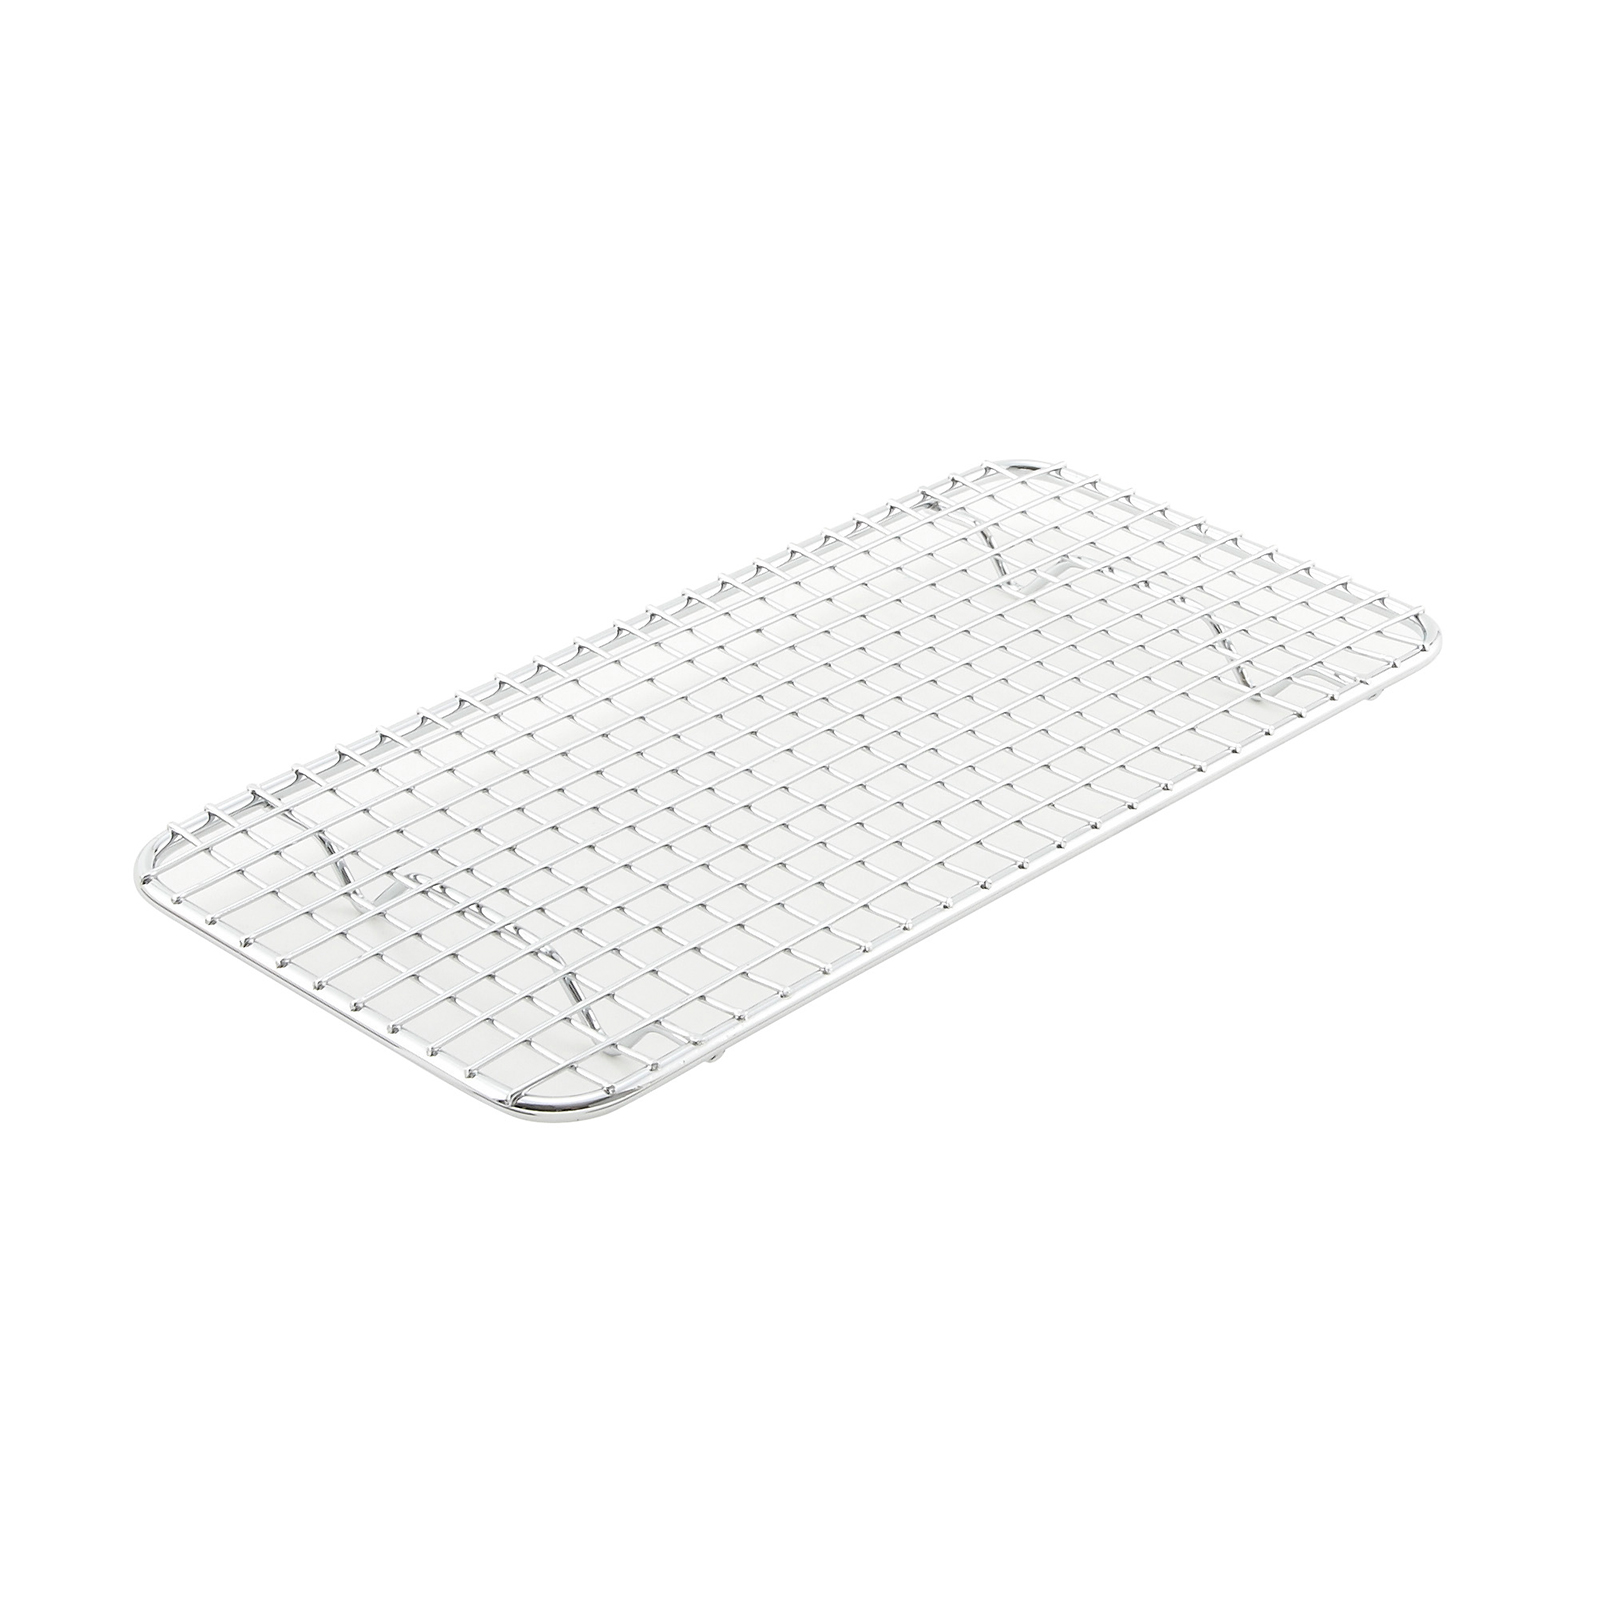 2400-00 Winco PGW-510 wire pan rack / grate